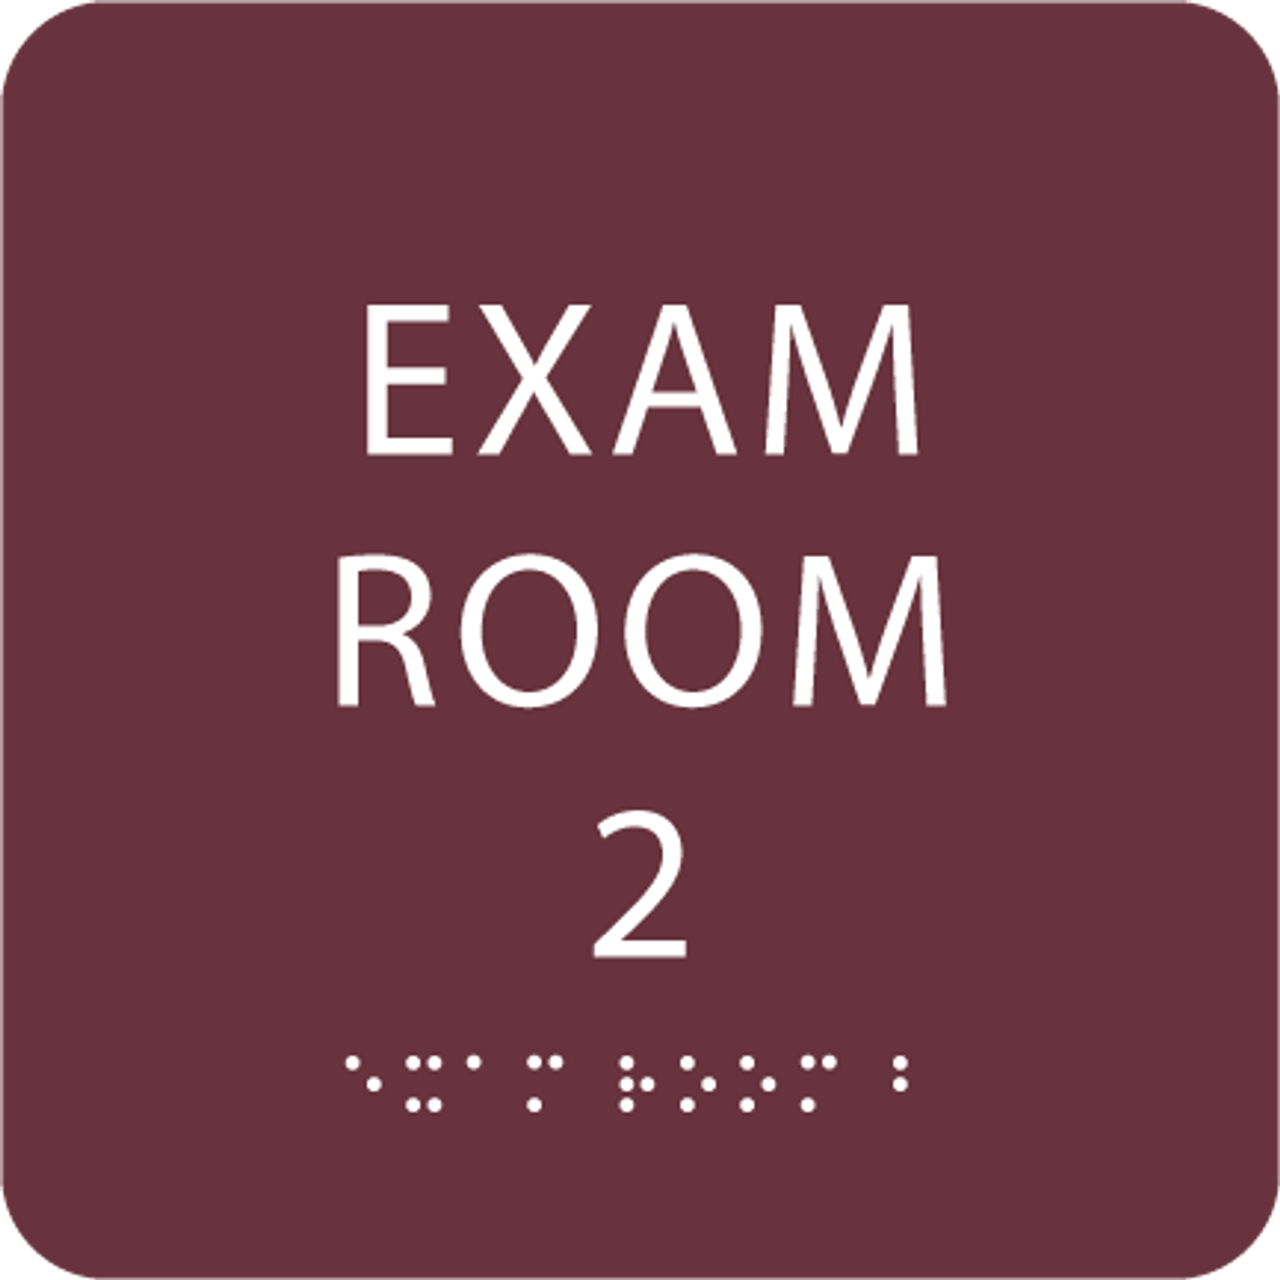 Burgundy ADA Exam Room 2 Sign with Braille